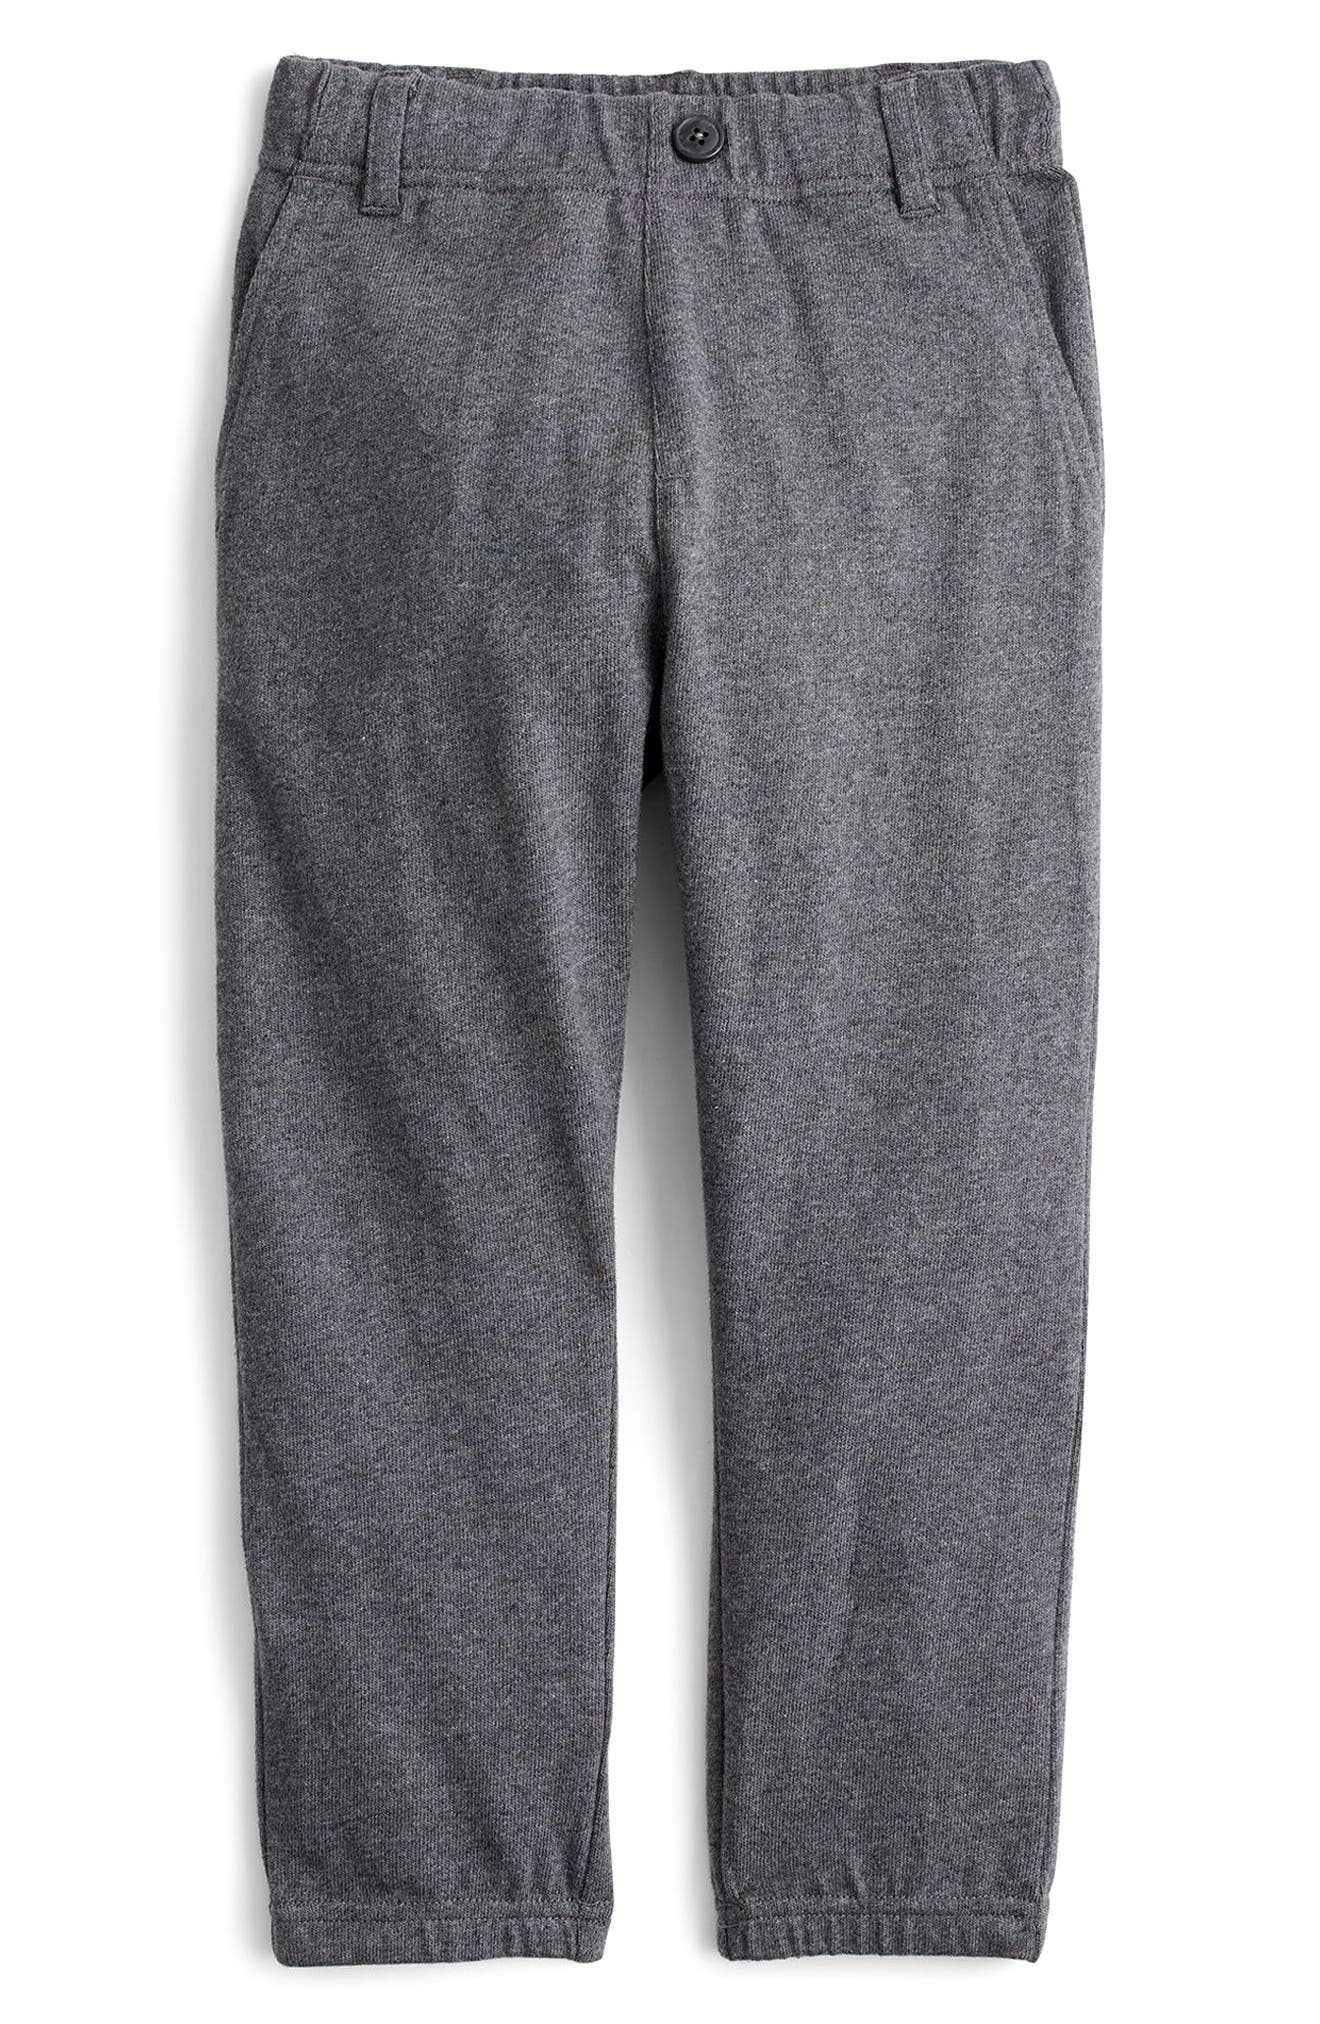 Trouser Sweatpants,                             Main thumbnail 1, color,                             Heather Charcoal